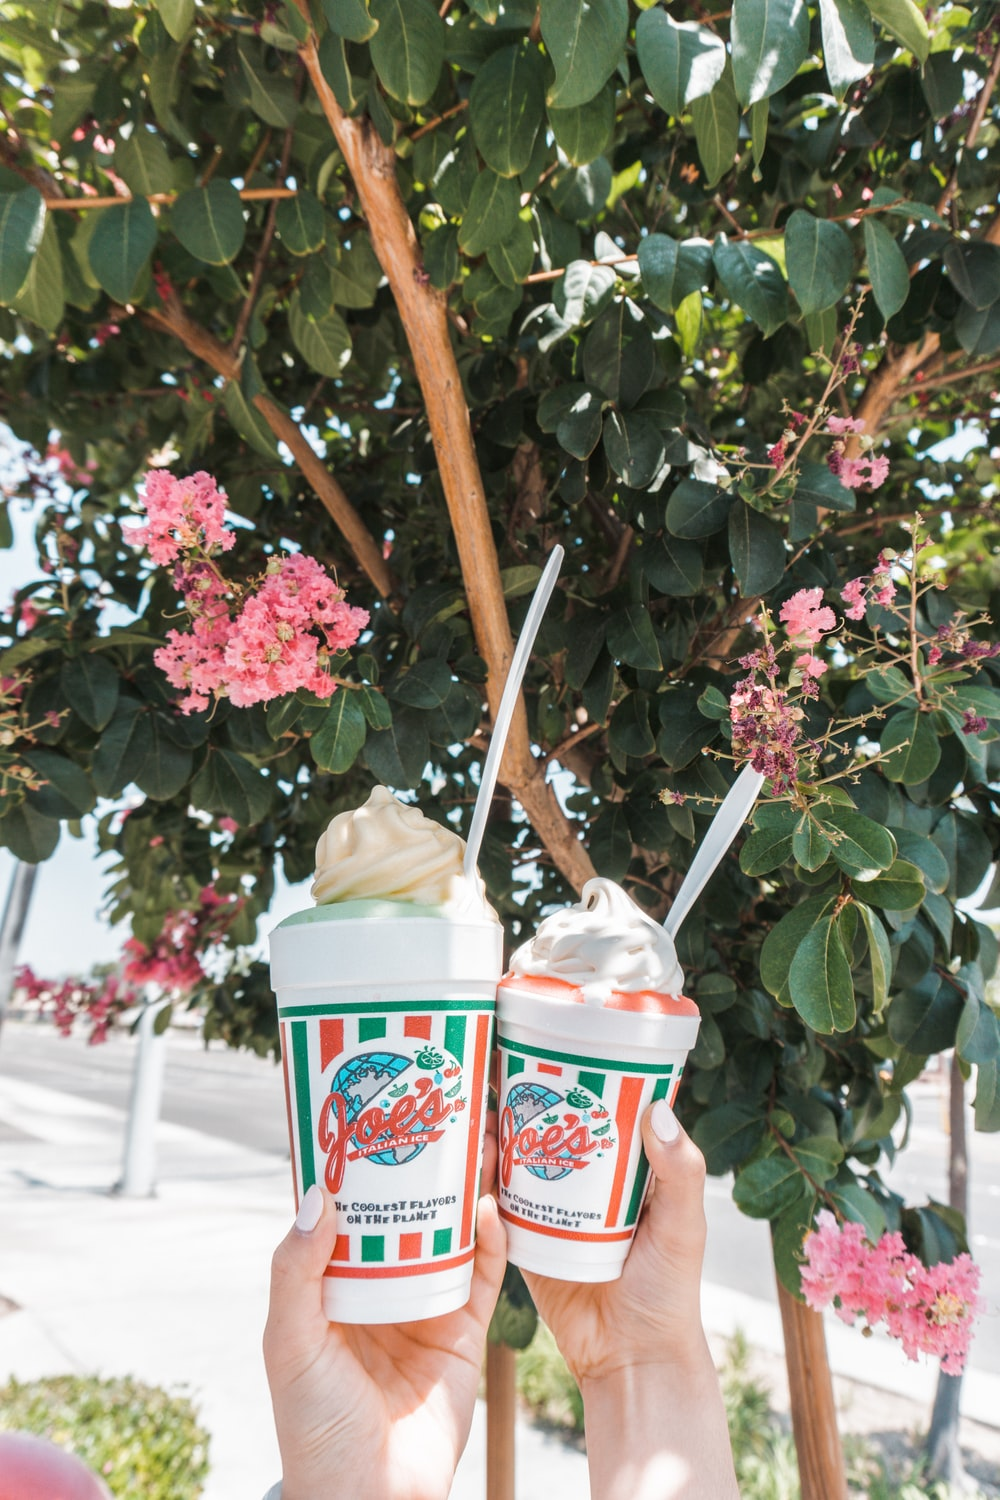 two persons holding Joe's frappes plastic cups near tree